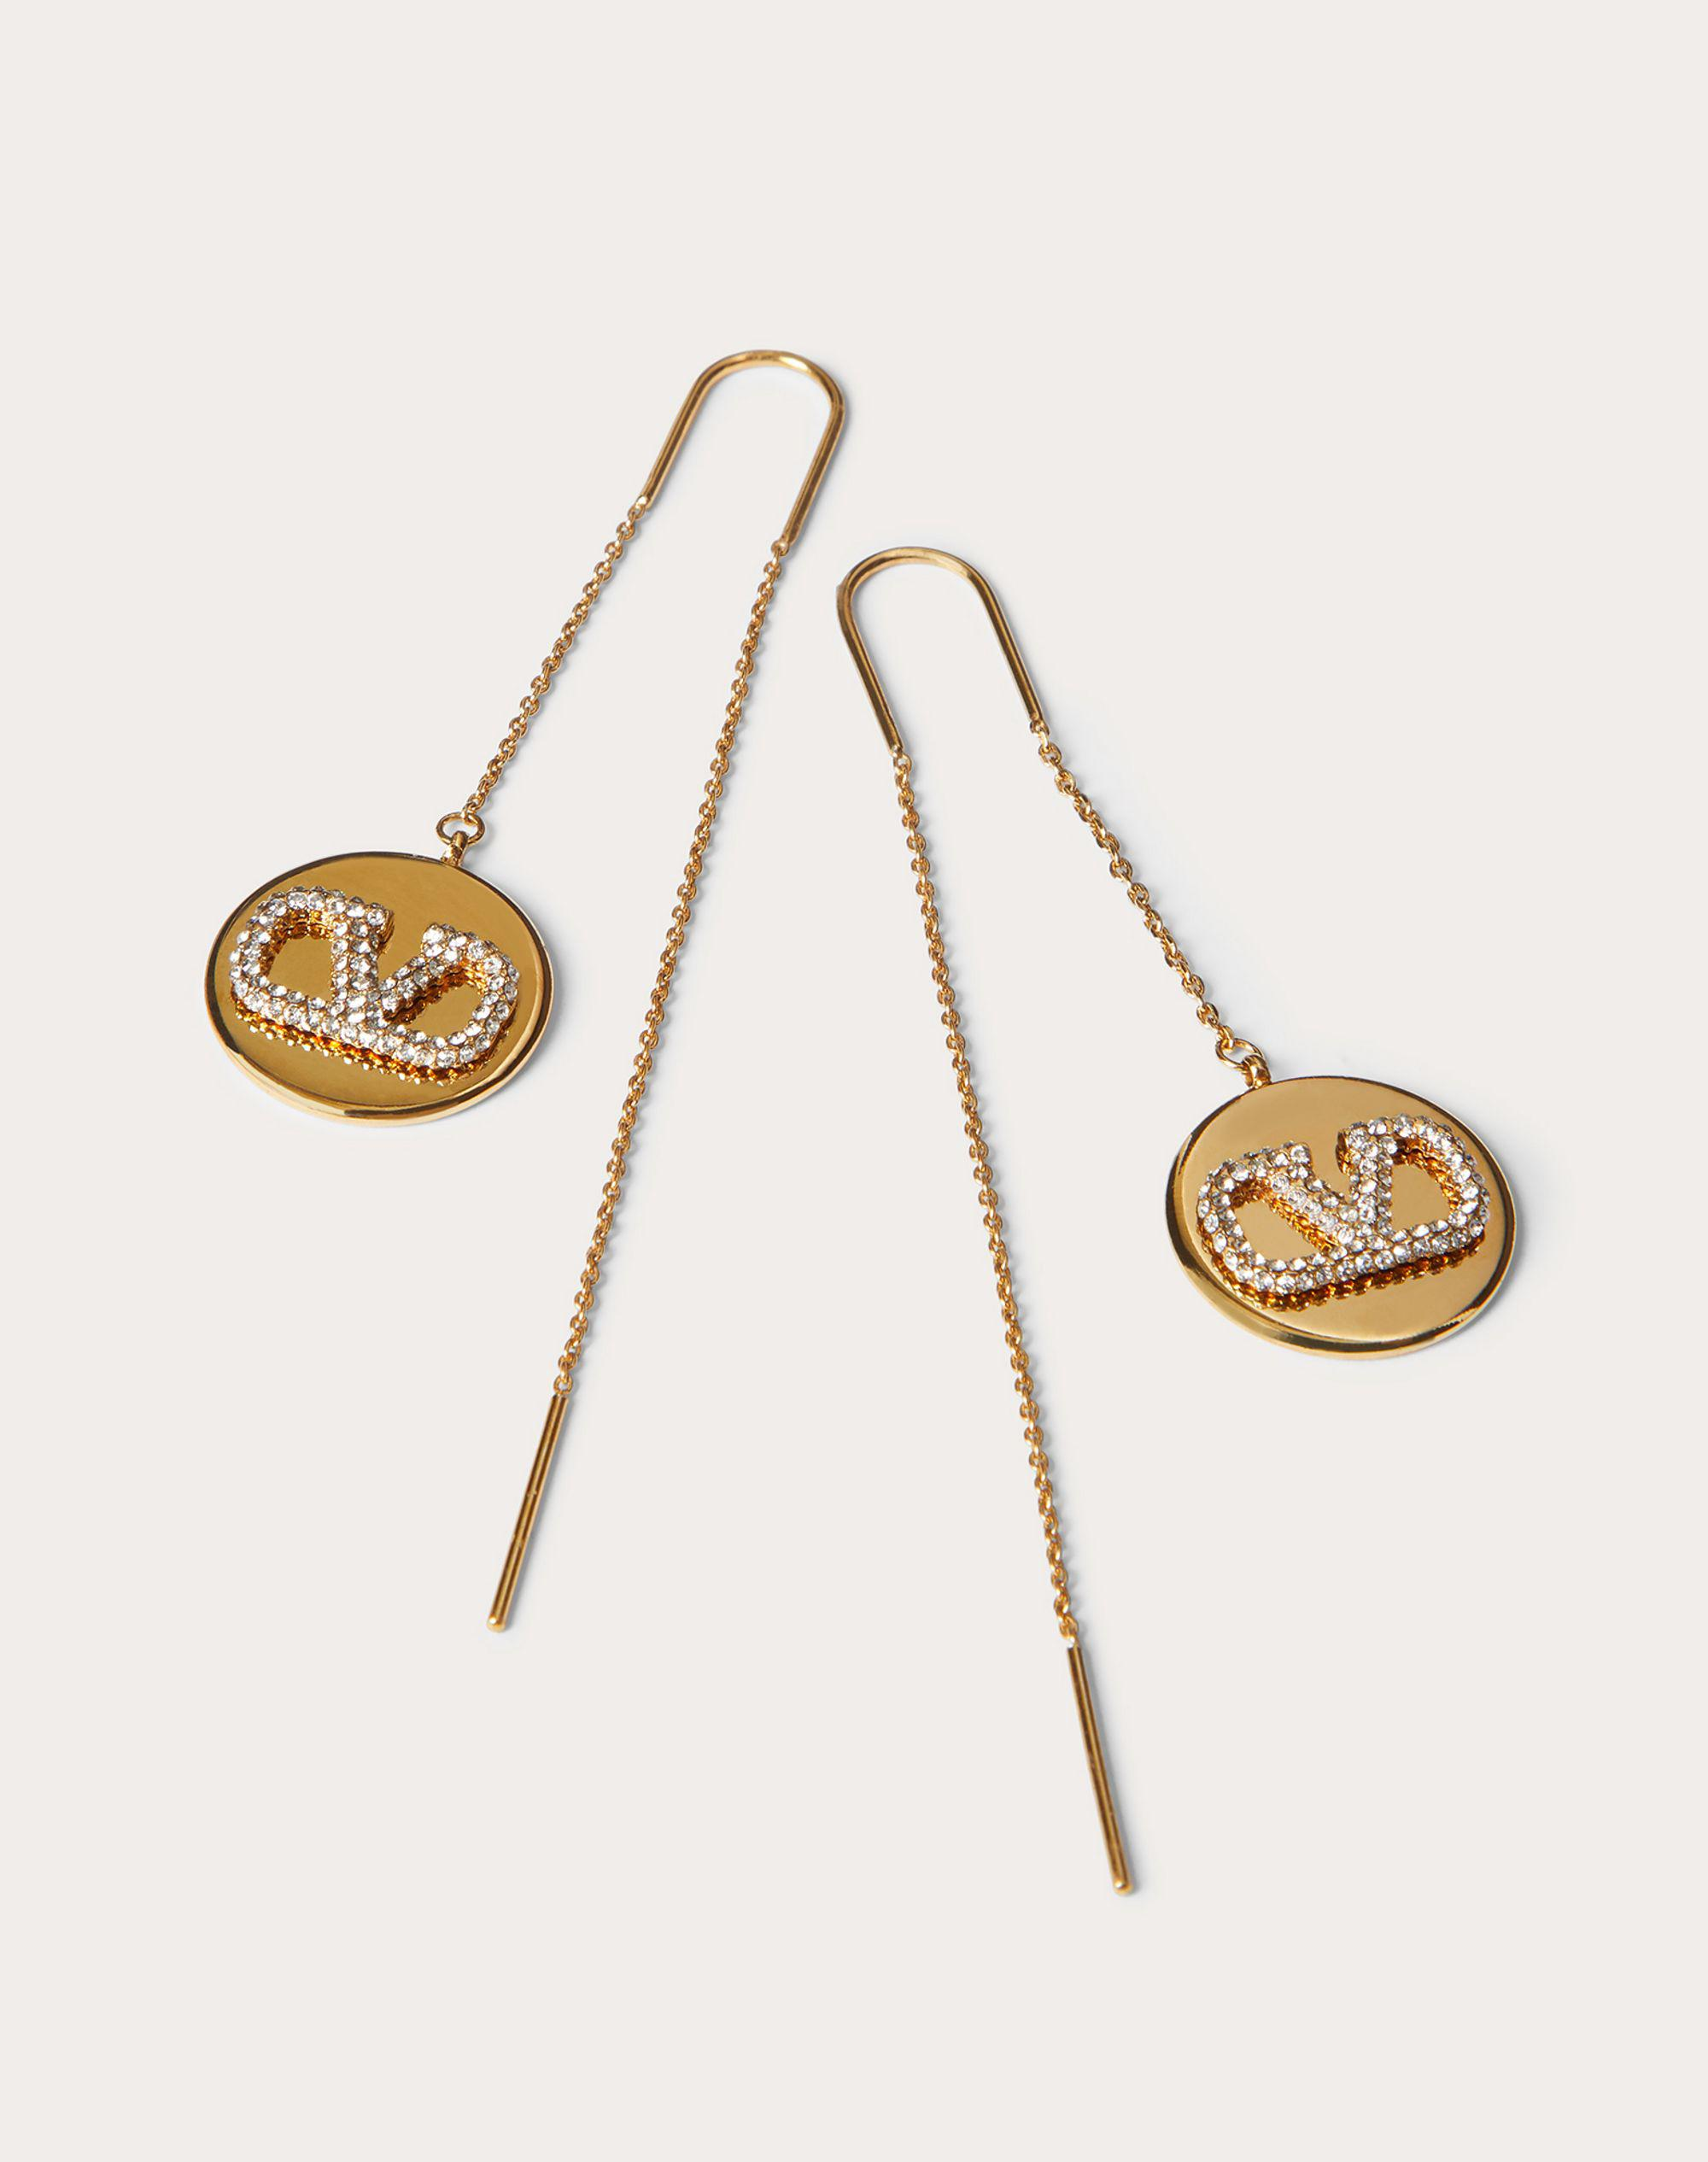 VLogo Signature Earrings in Metal and Swarovski® Crystals